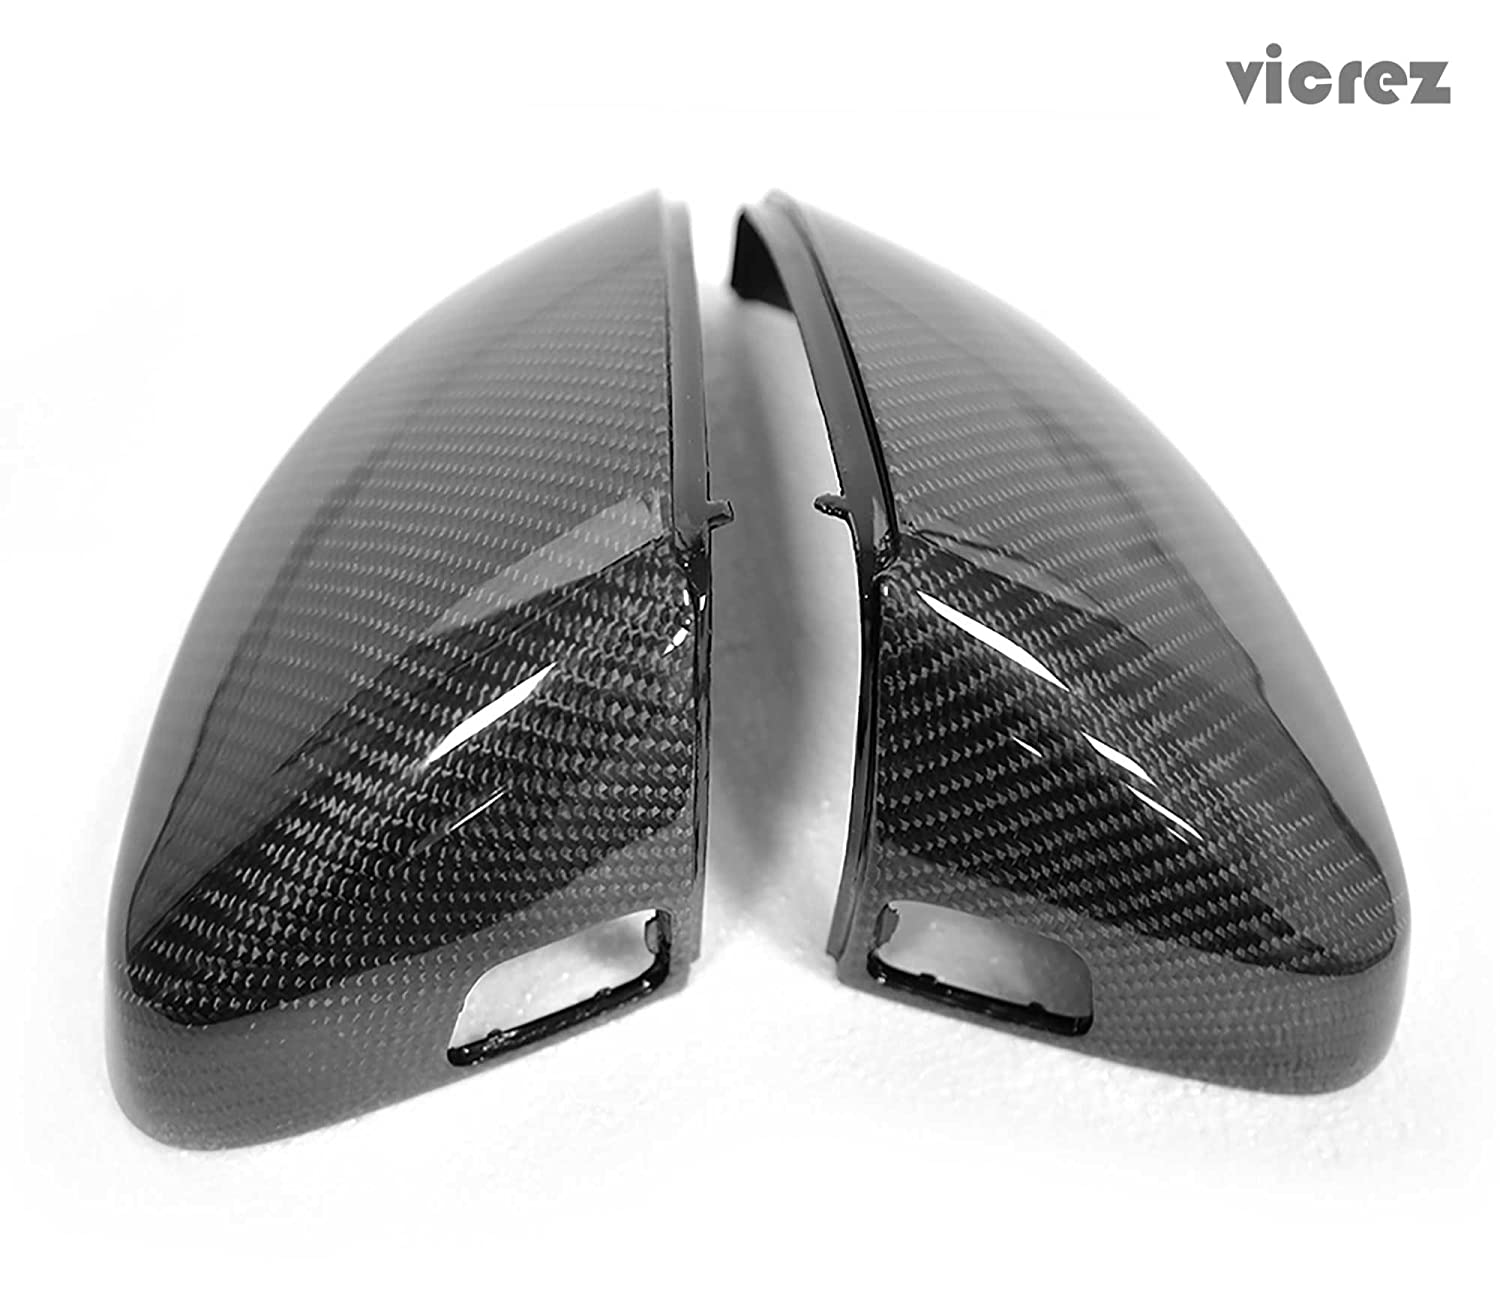 Vicrez Audi A3 S3 RS3 2014-2018 Carbon Fiber Side Mirror Cover vz100705